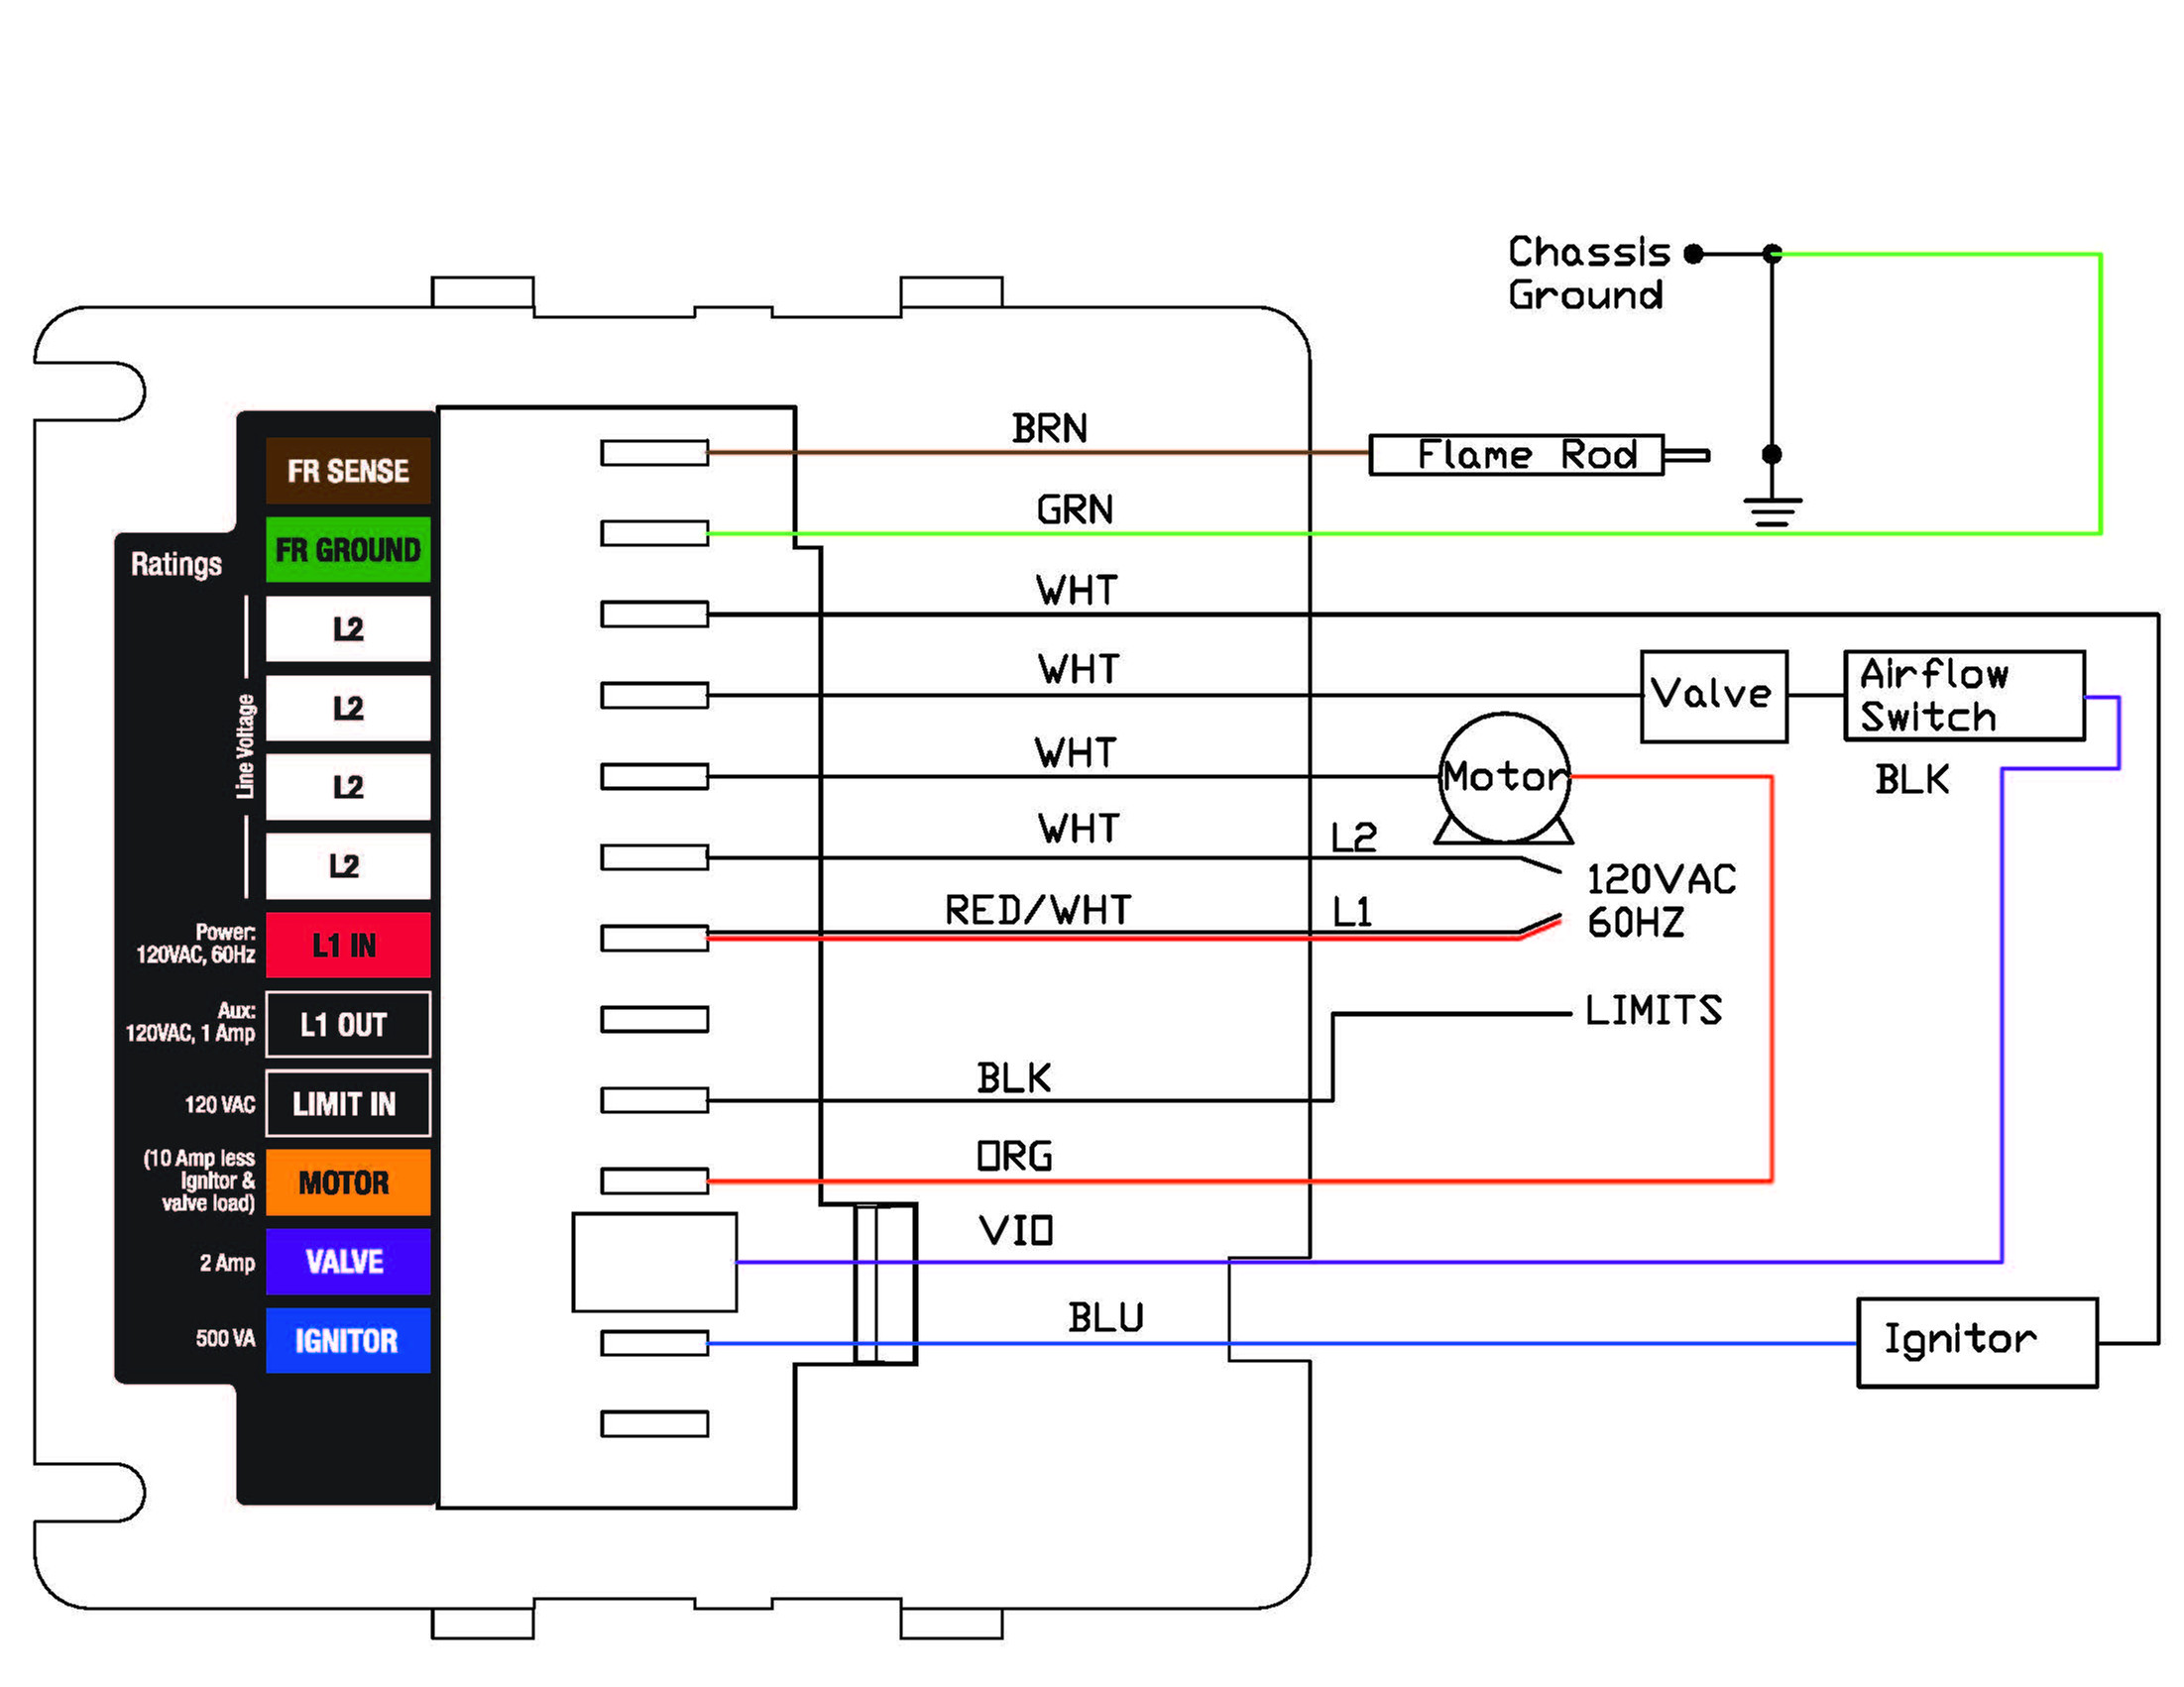 120v Schematic Wiring - Free Kenworth Wiring Diagrams for Wiring Diagram  SchematicsWiring Diagram Schematics